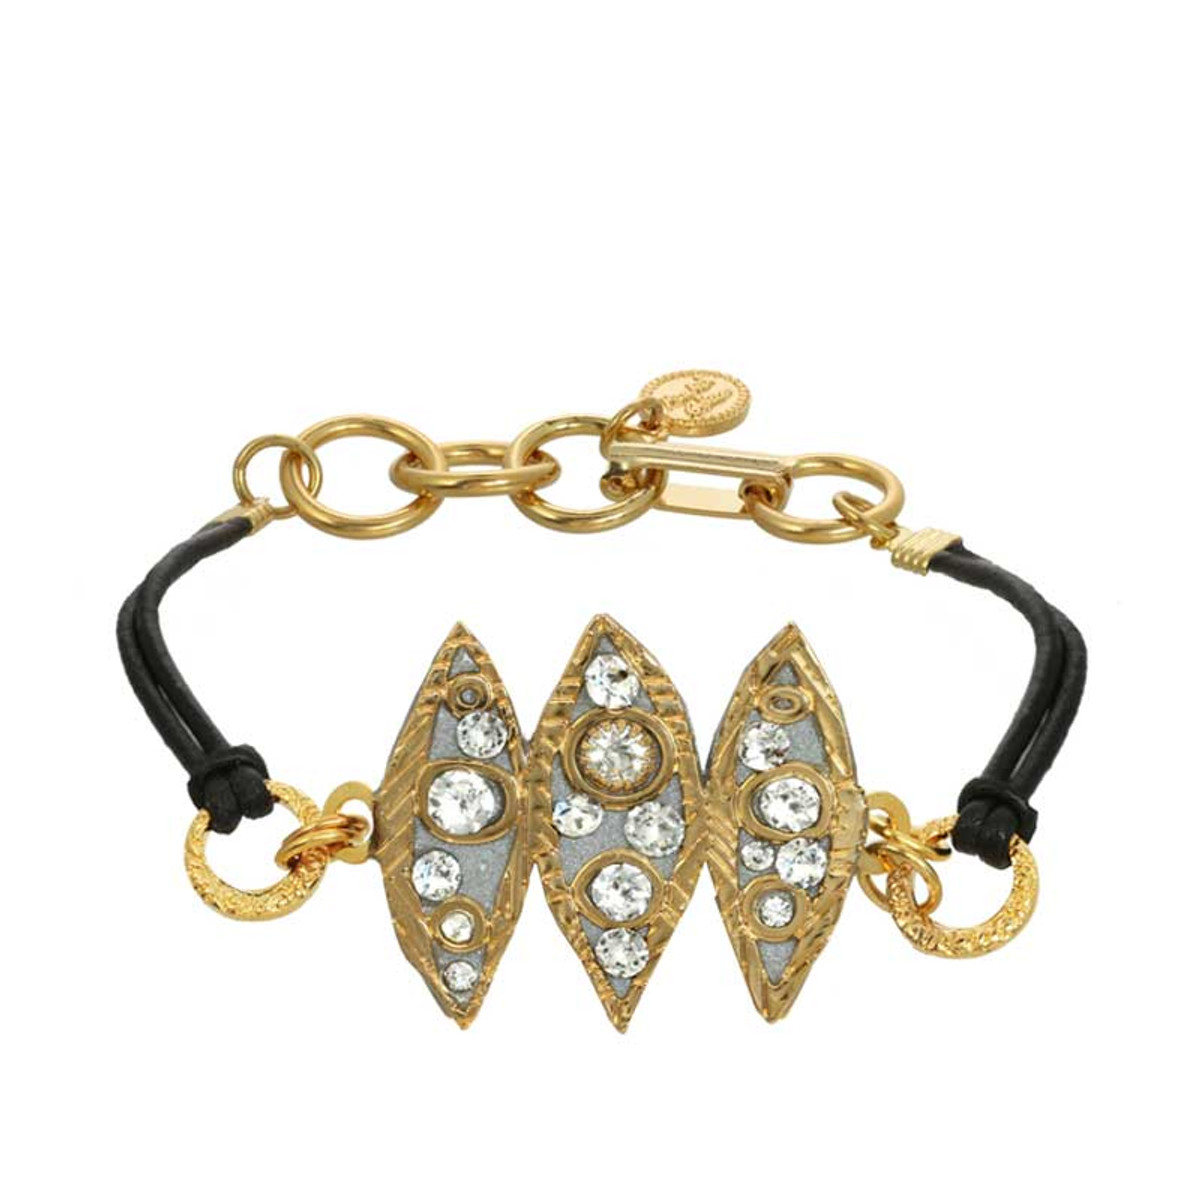 Gold Icicle bracelet from Michal Golan Jewelry